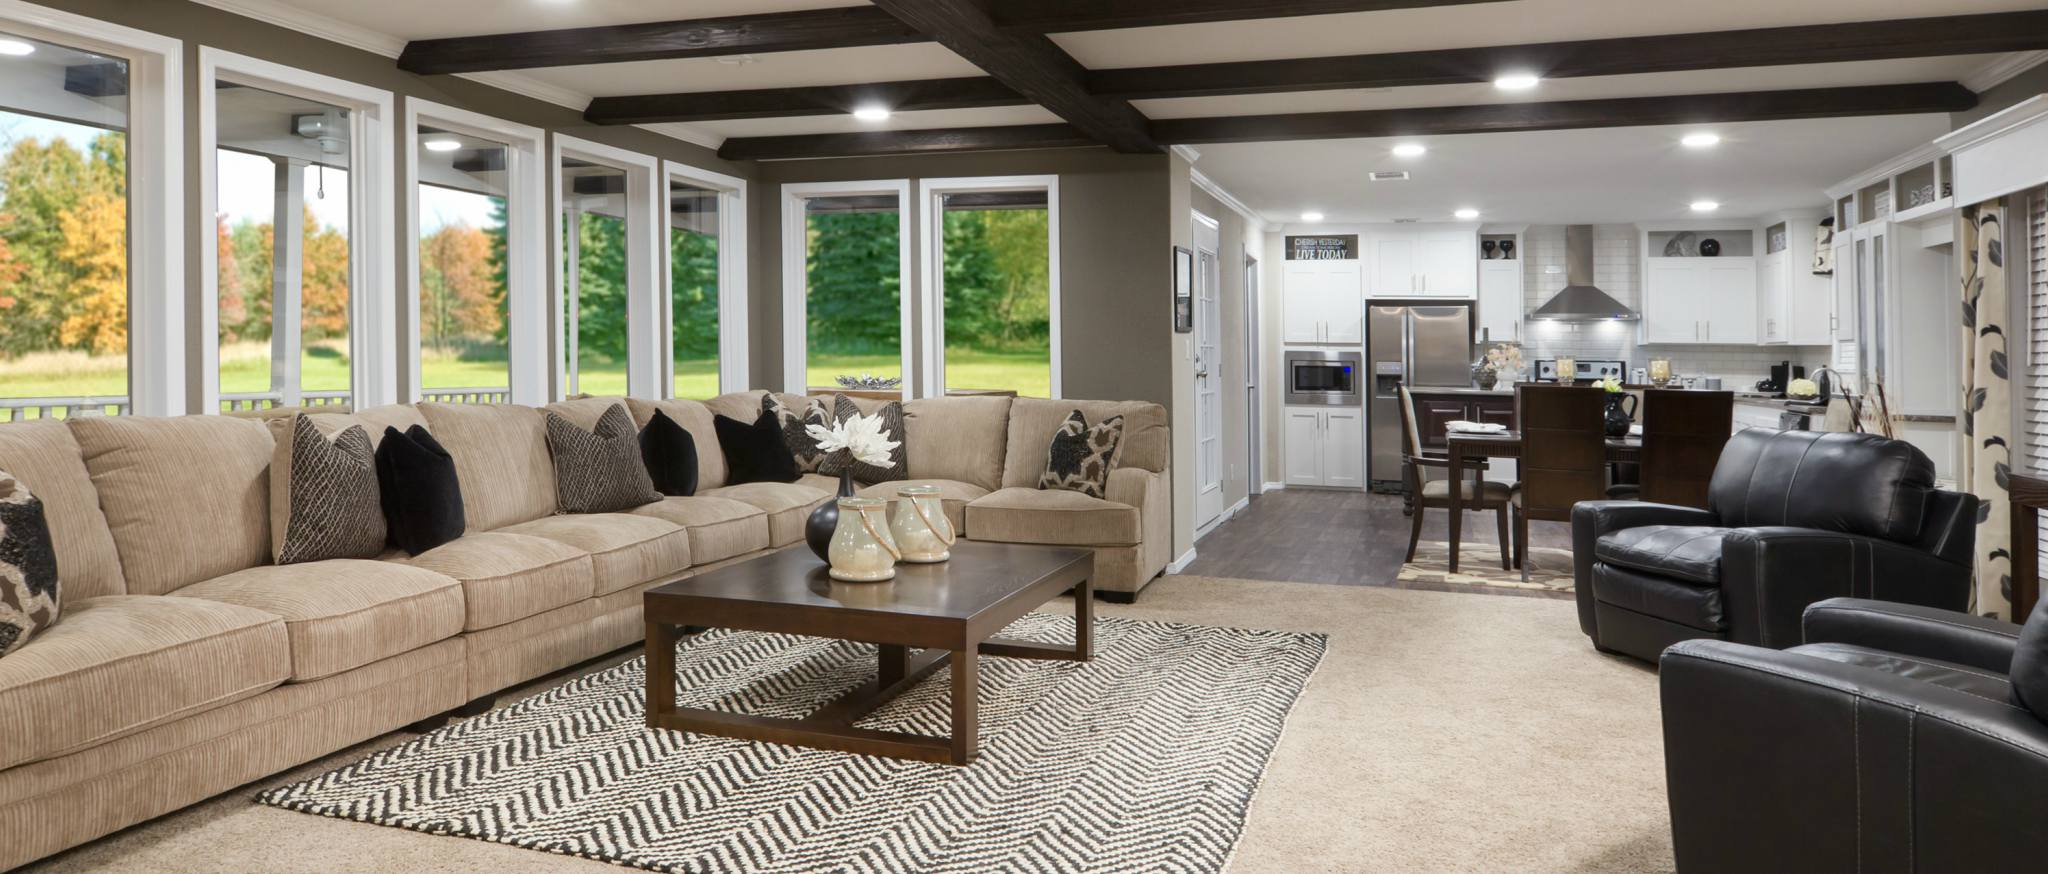 Remodeling A Mobile Home Phx Interior Design